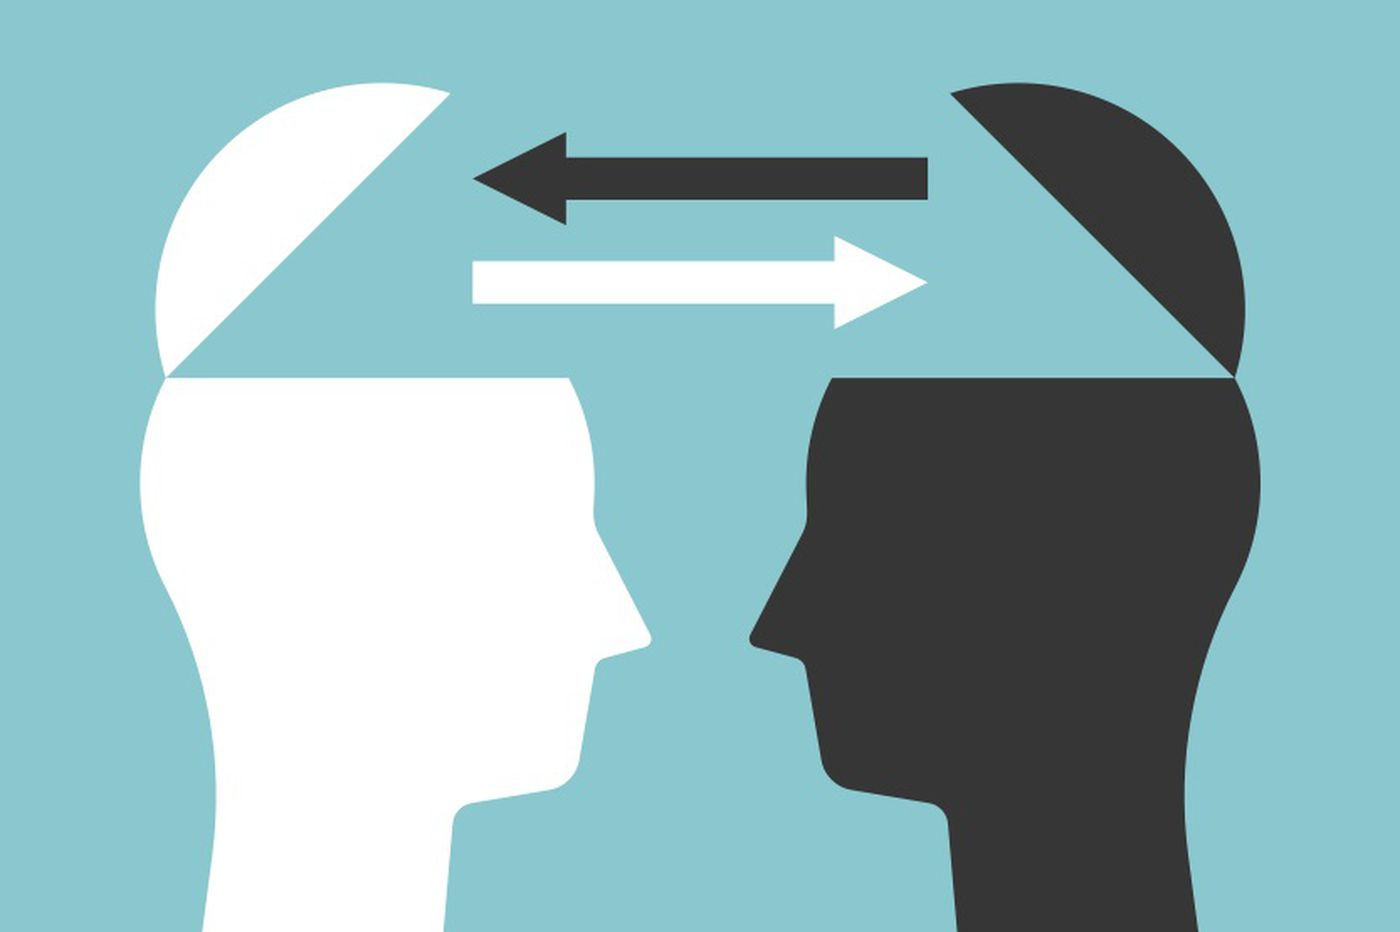 The best way to evaluate your beliefs? Engage with people who disagree with you | Opinion